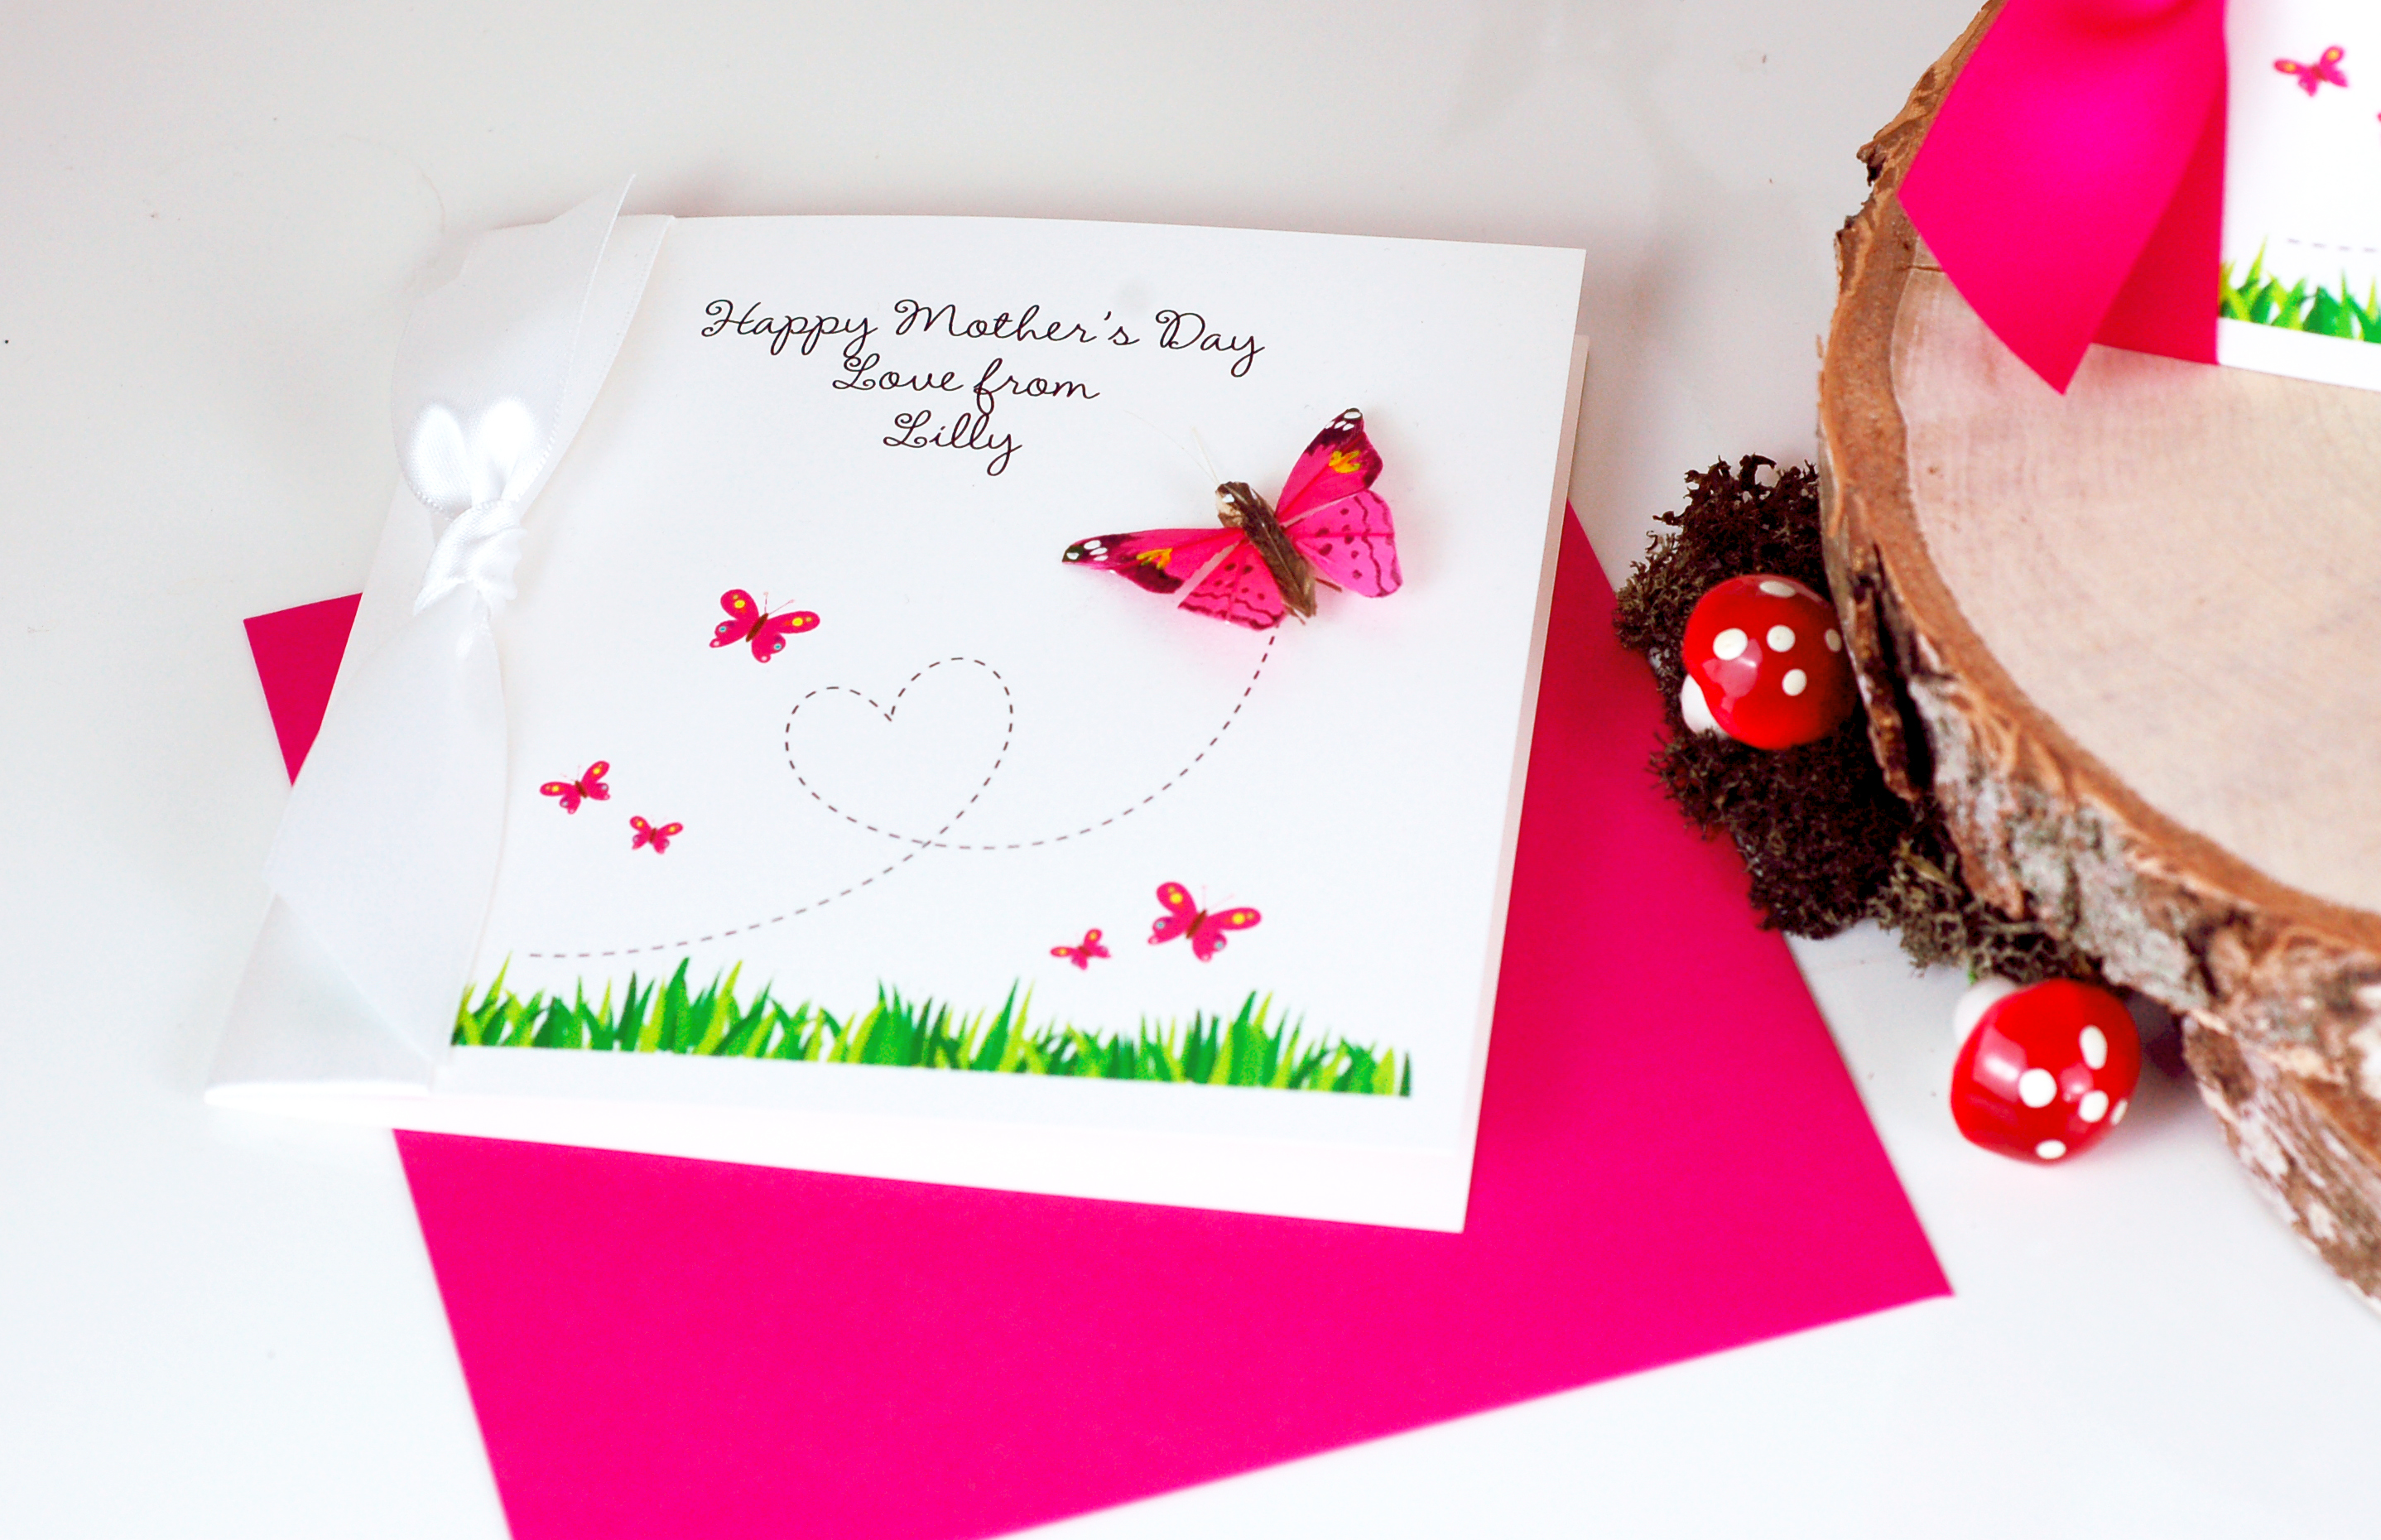 Mothers day made with love designs mothers day flutter bright close up m4hsunfo